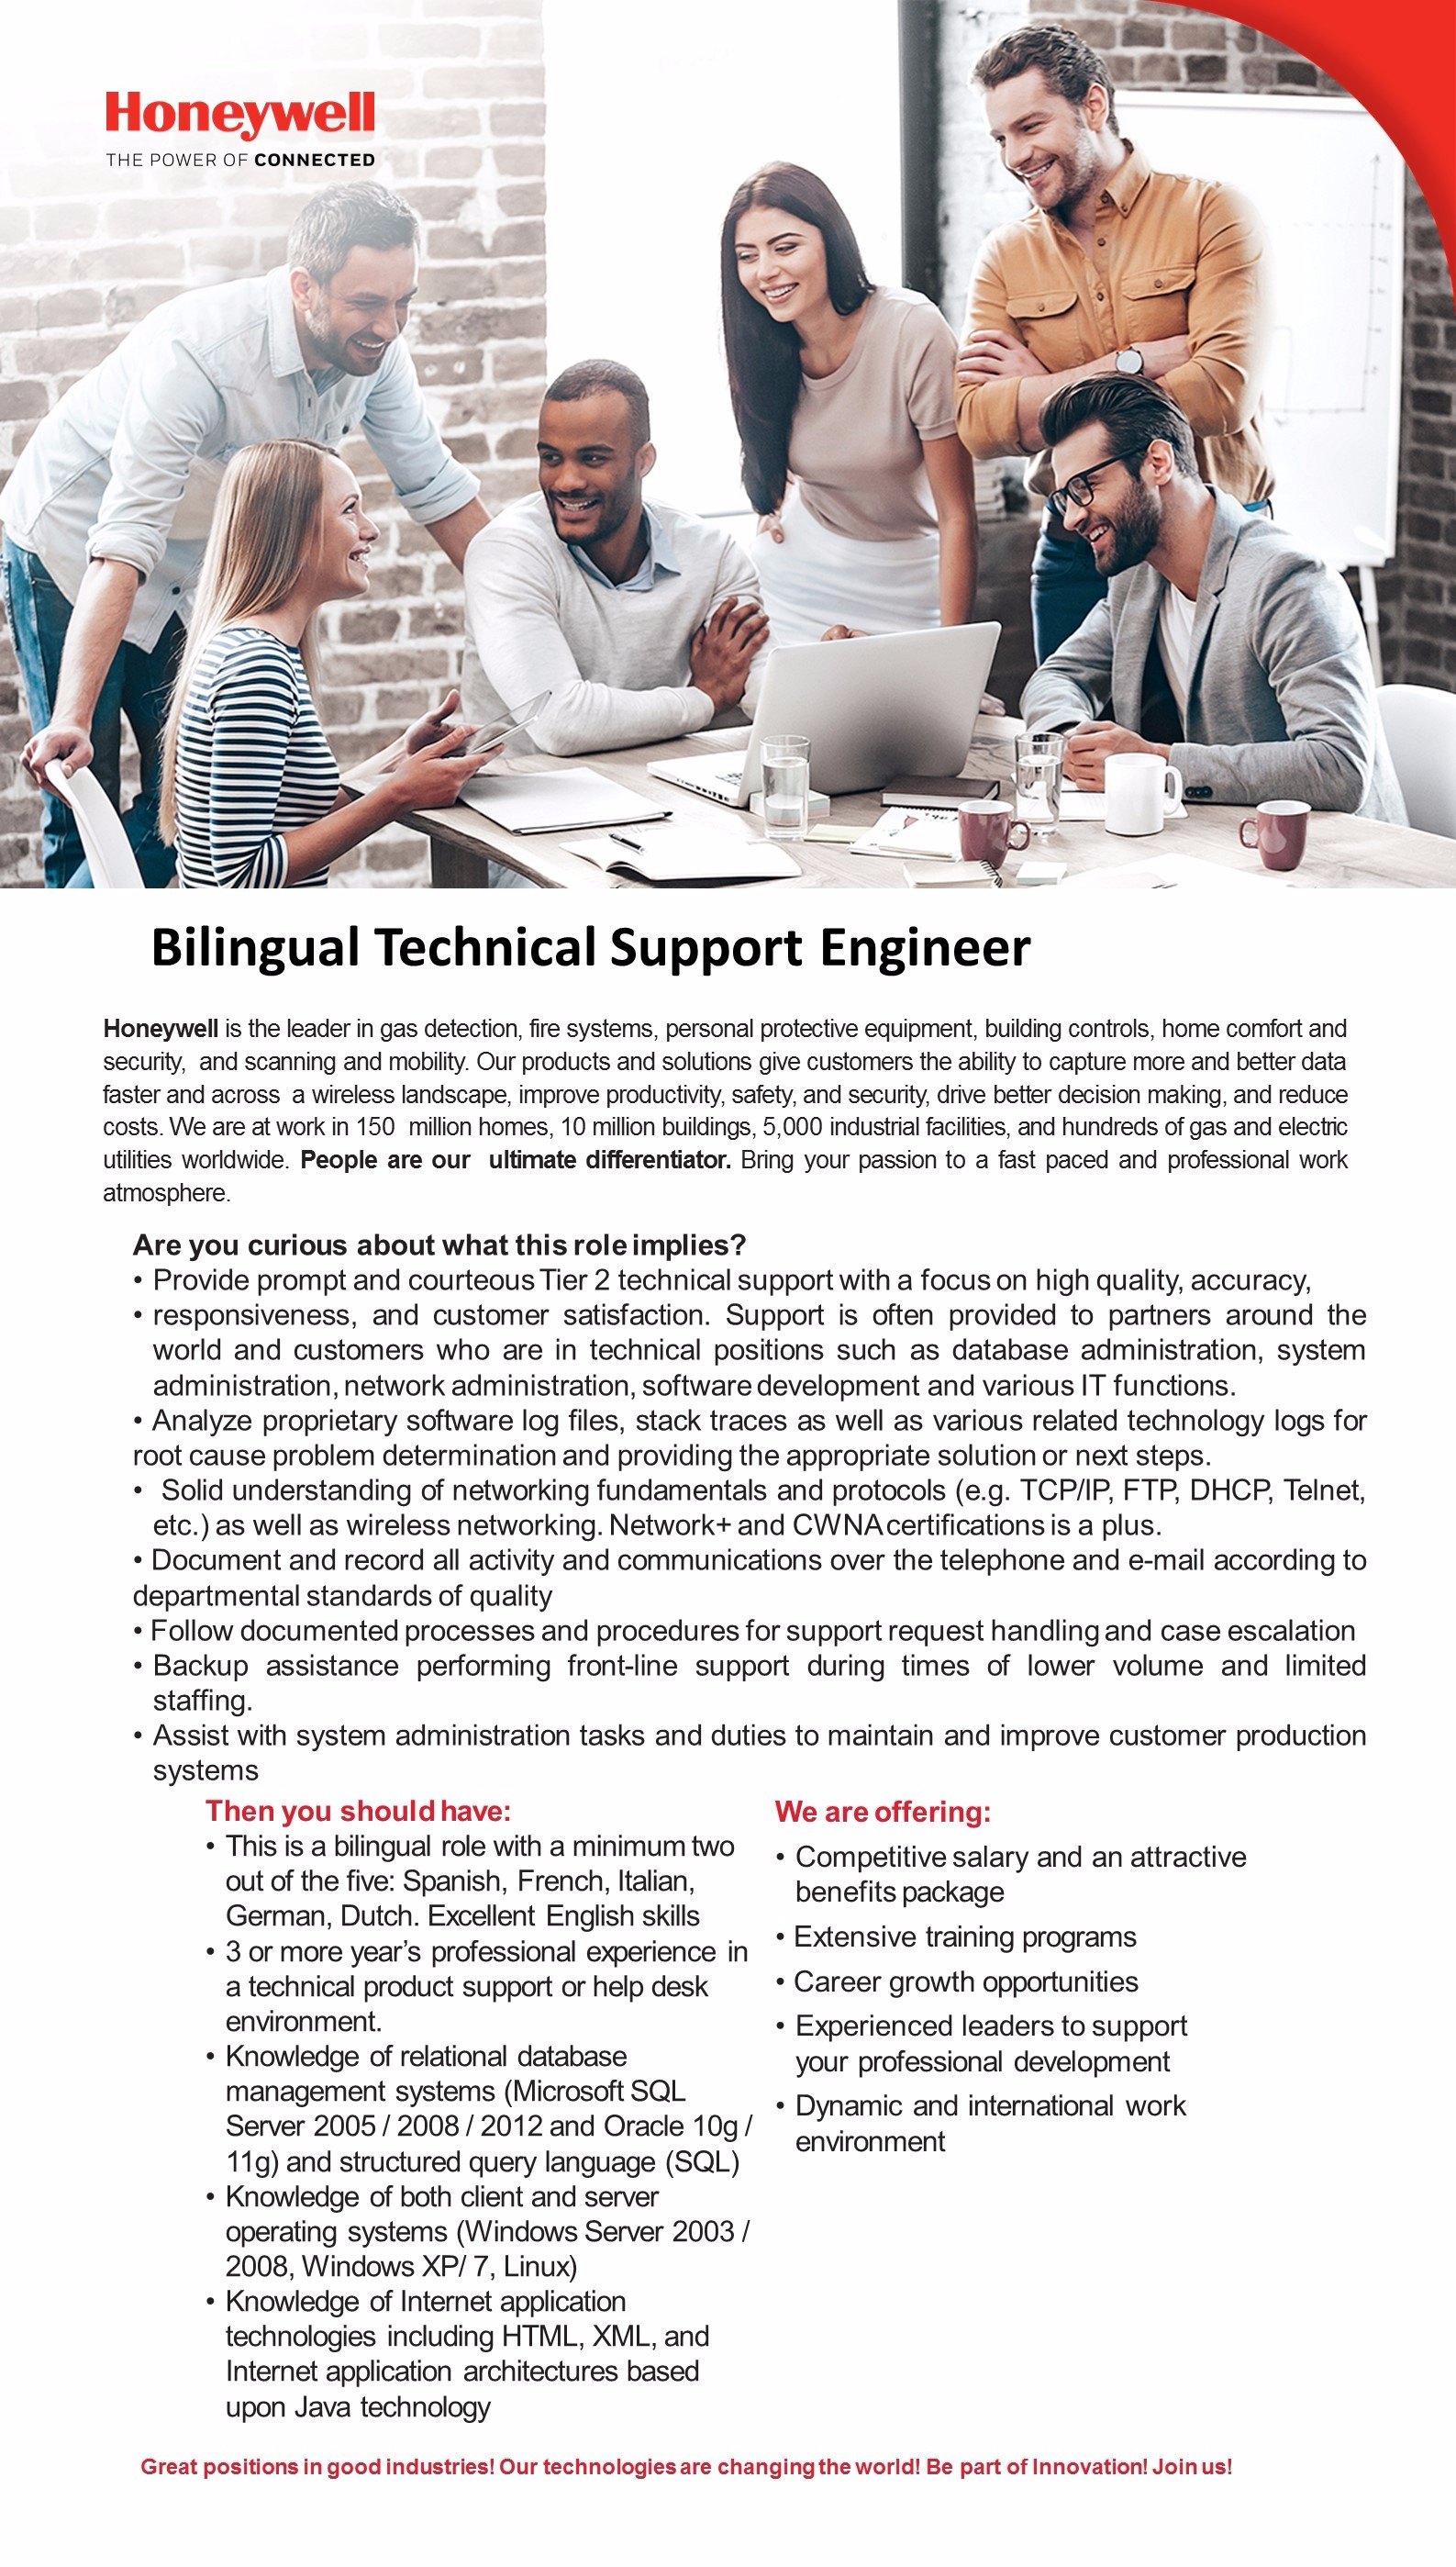 Bilingual Technical Support Engineer